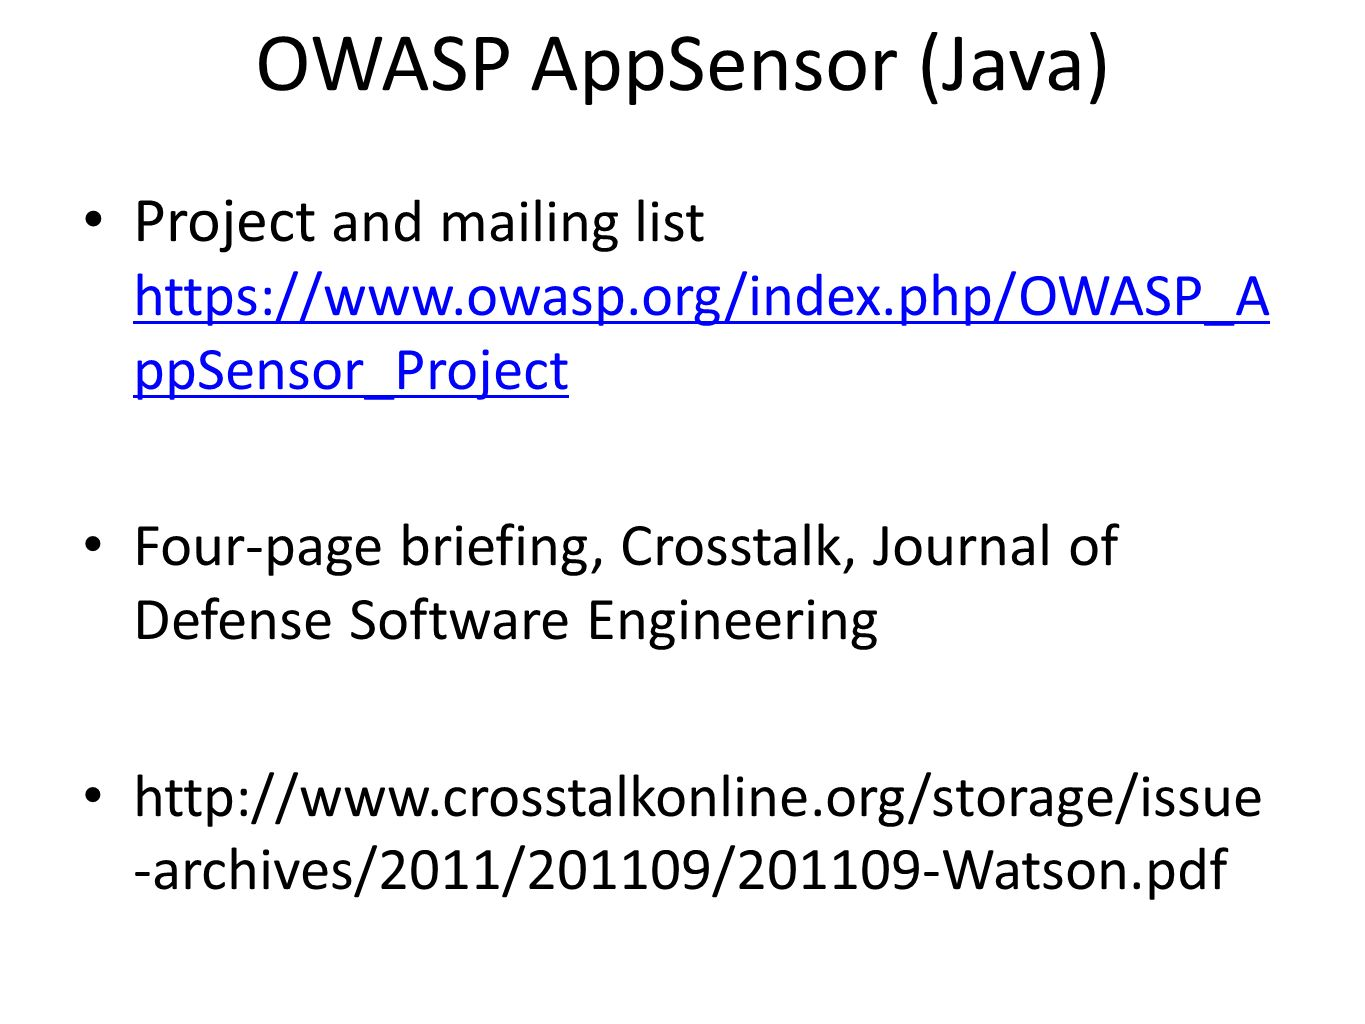 OWASP AppSensor (Java) Project and mailing list https://www.owasp.org/index.php/OWASP_A ppSensor_Project https://www.owasp.org/index.php/OWASP_A ppSen